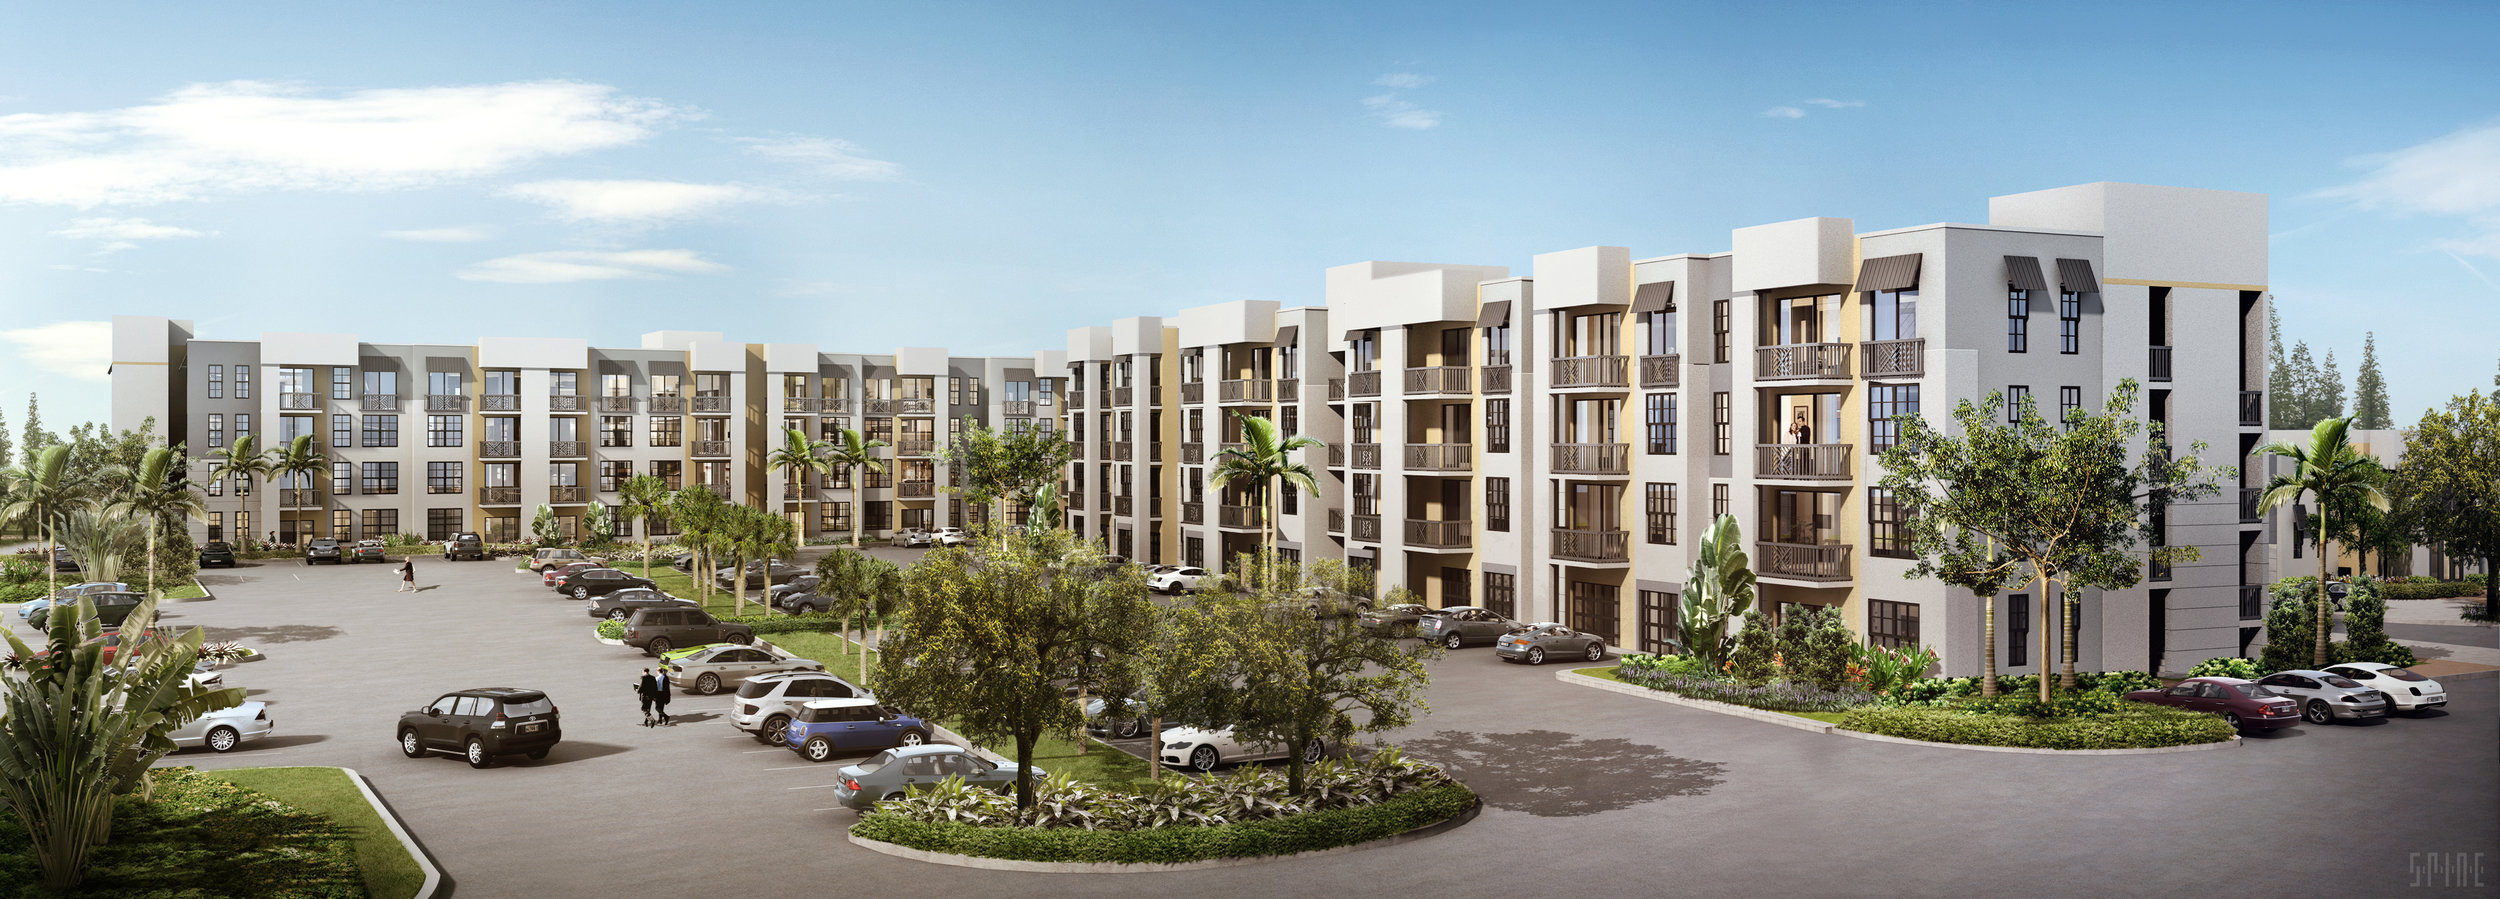 Rendering of the apartments at Cortina. Photo handout: Ram Real Estate